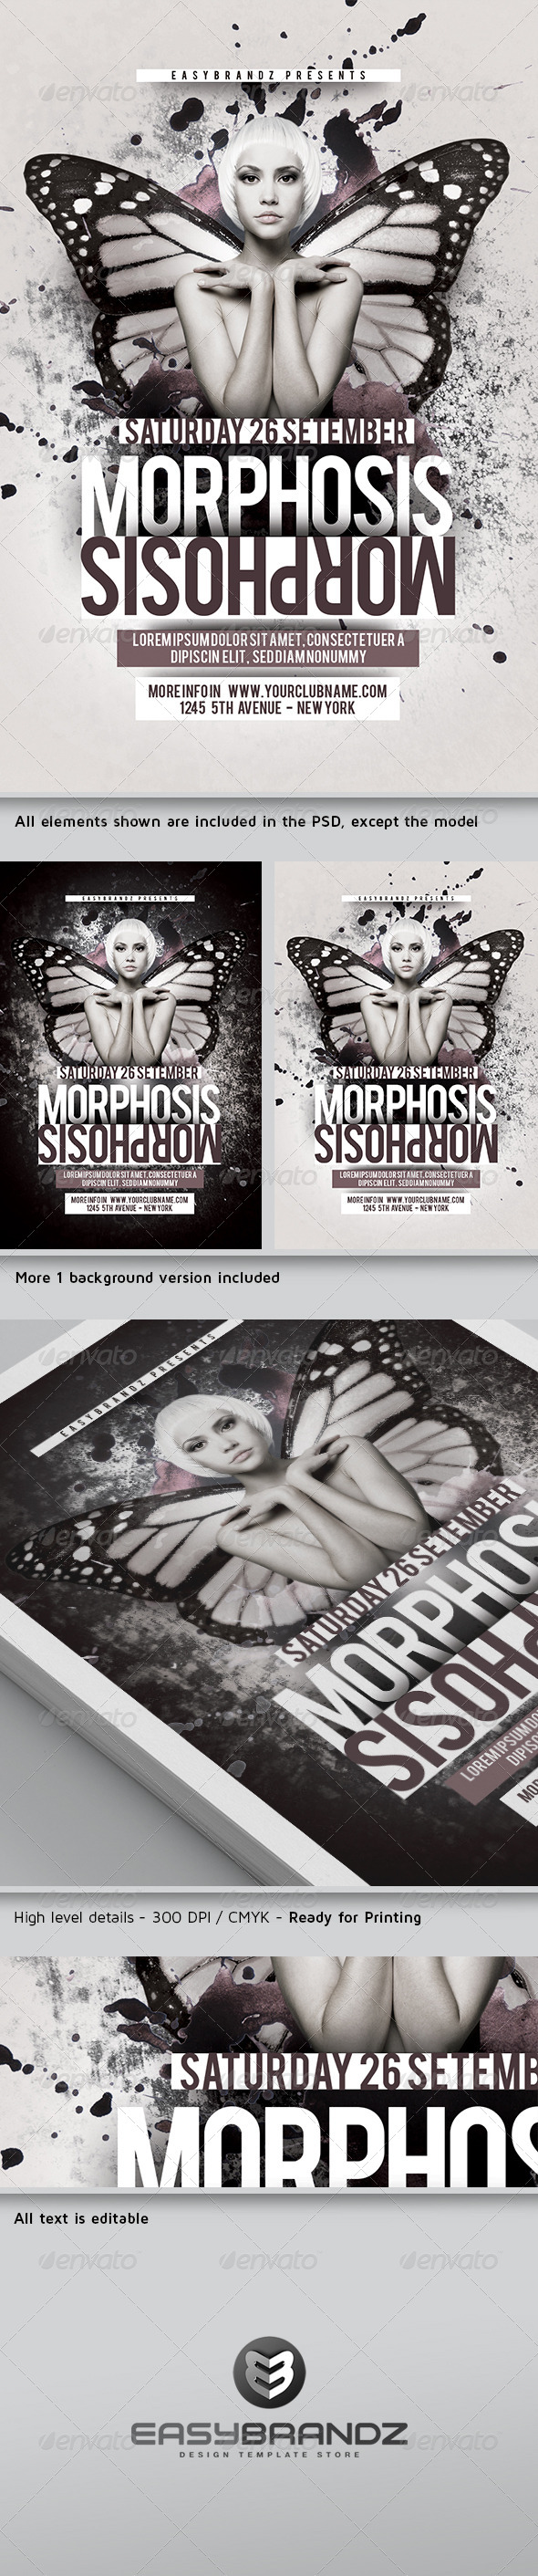 Morphosis Flyer Template - Events Flyers